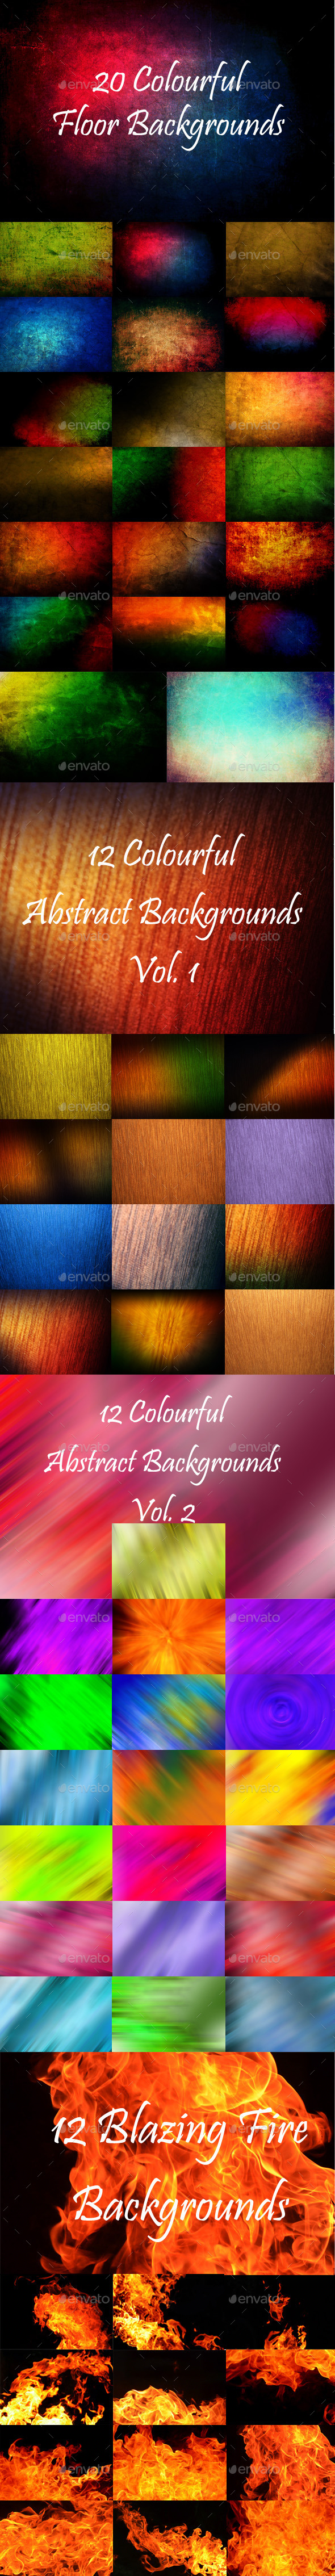 64 Abstract Backgrounds Bundle  - Abstract Backgrounds